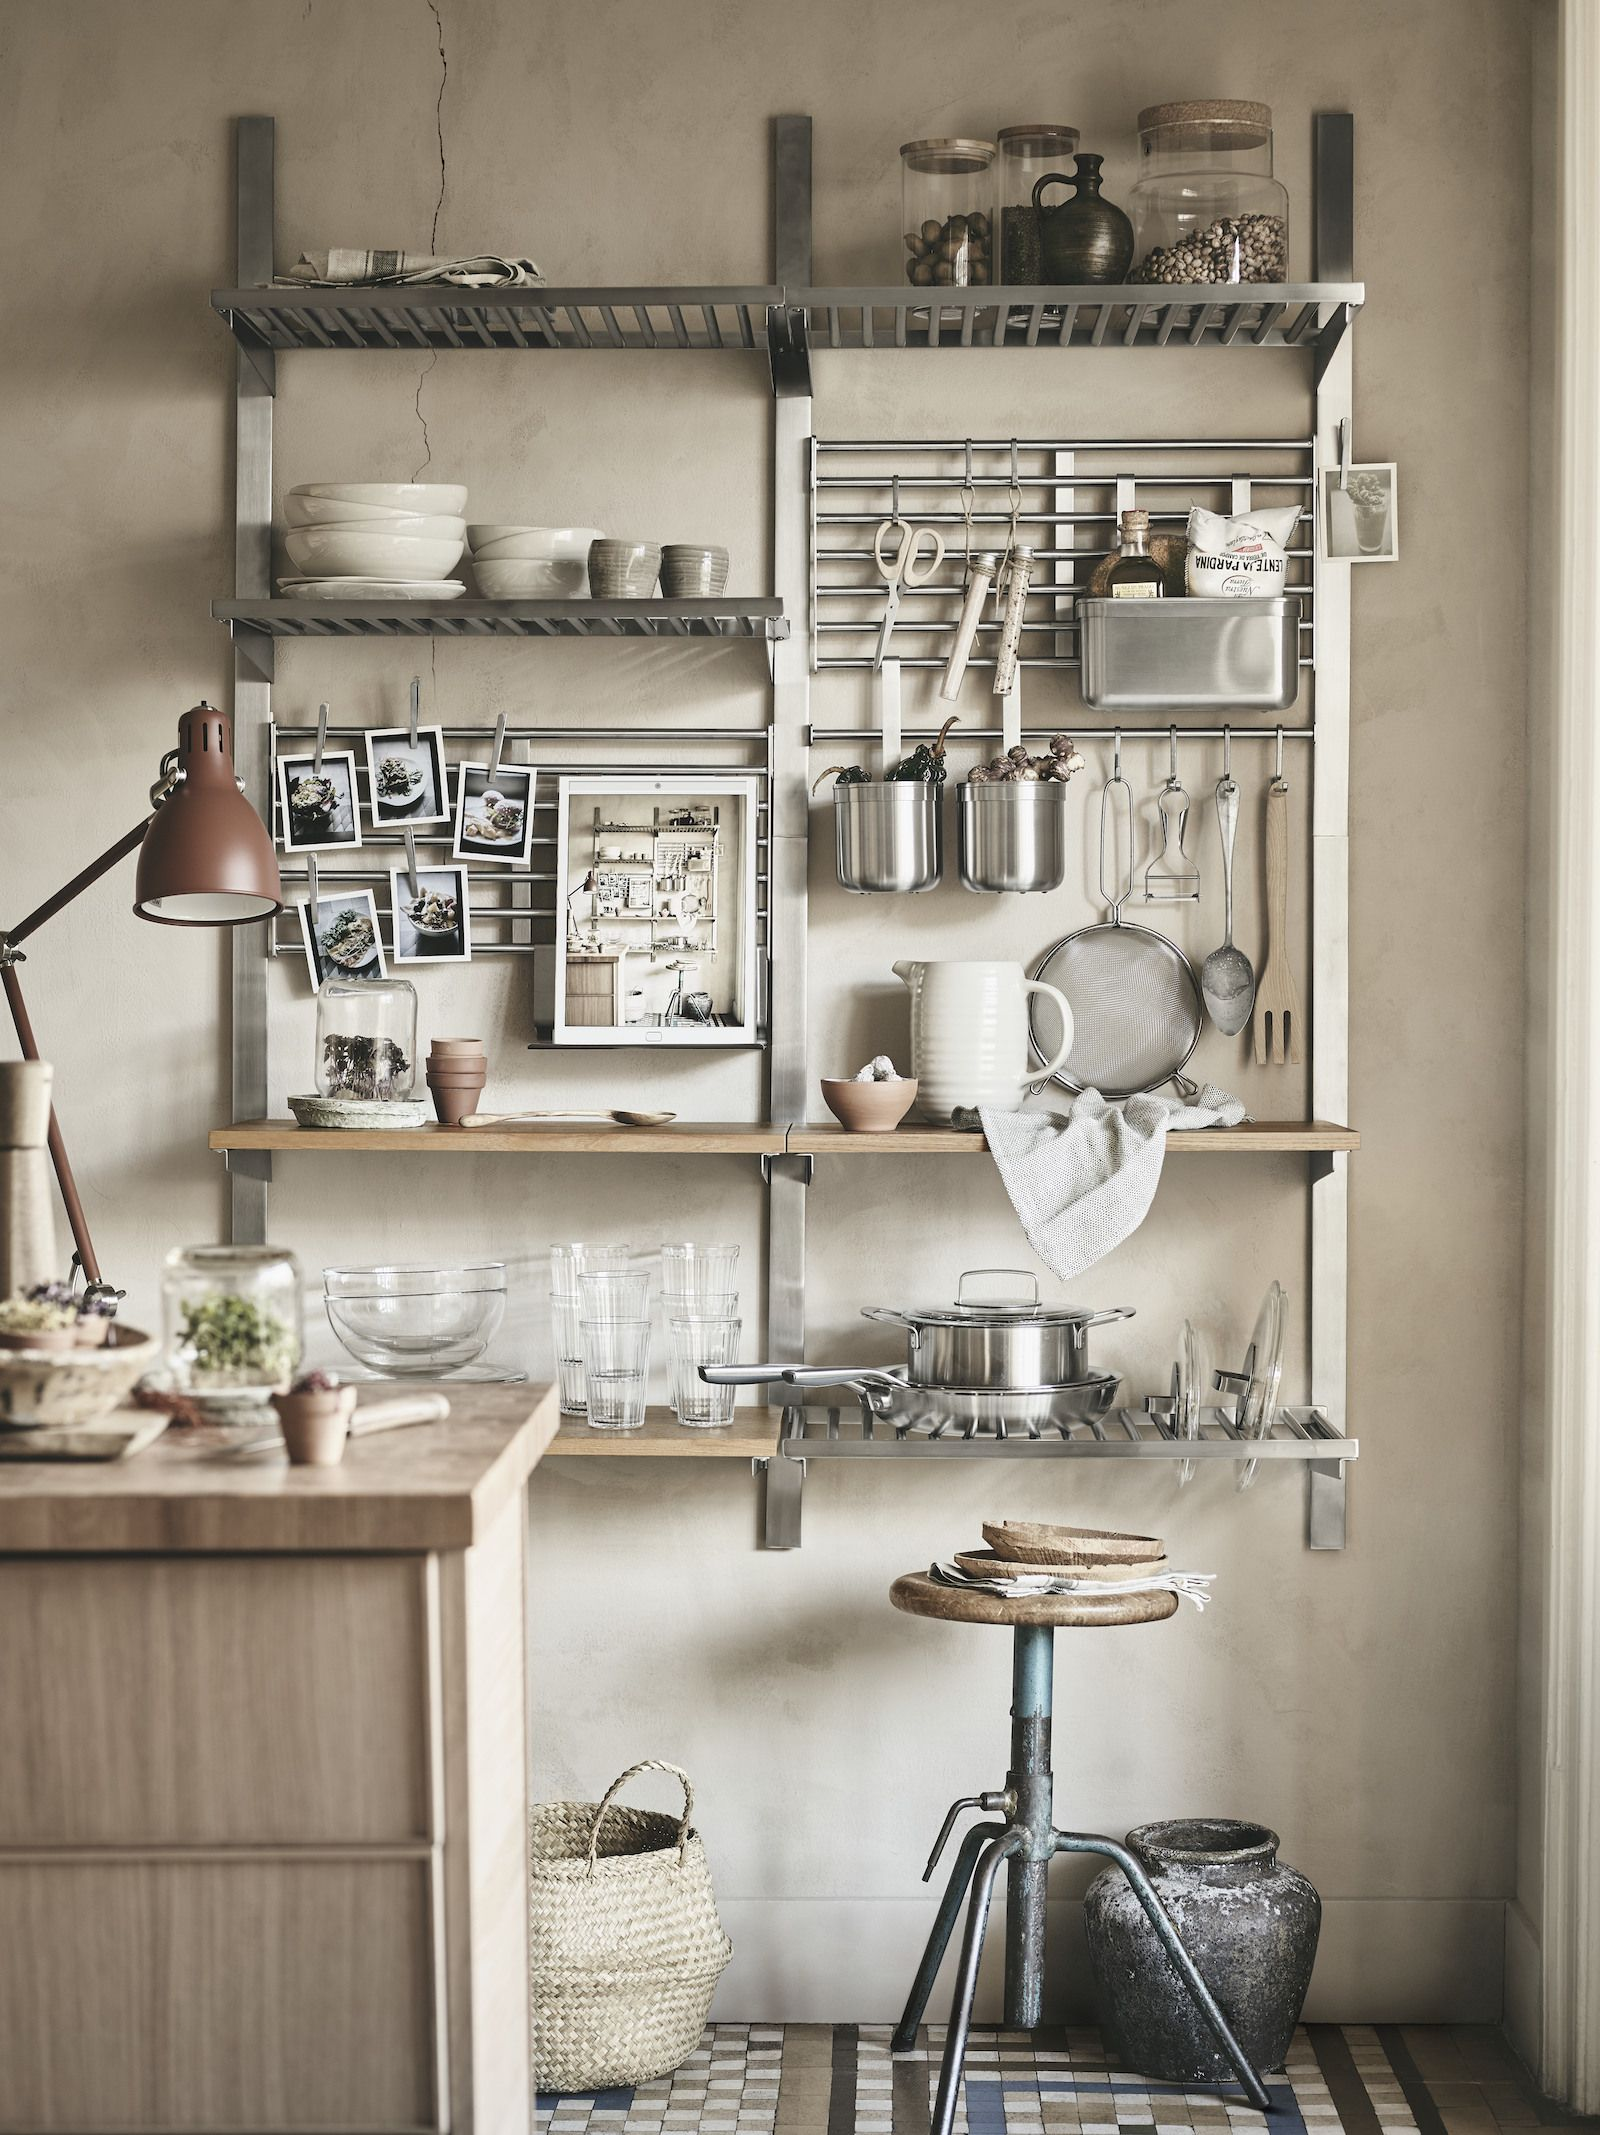 A Roundup of EcoFriendly Storage Ideas from the Editors